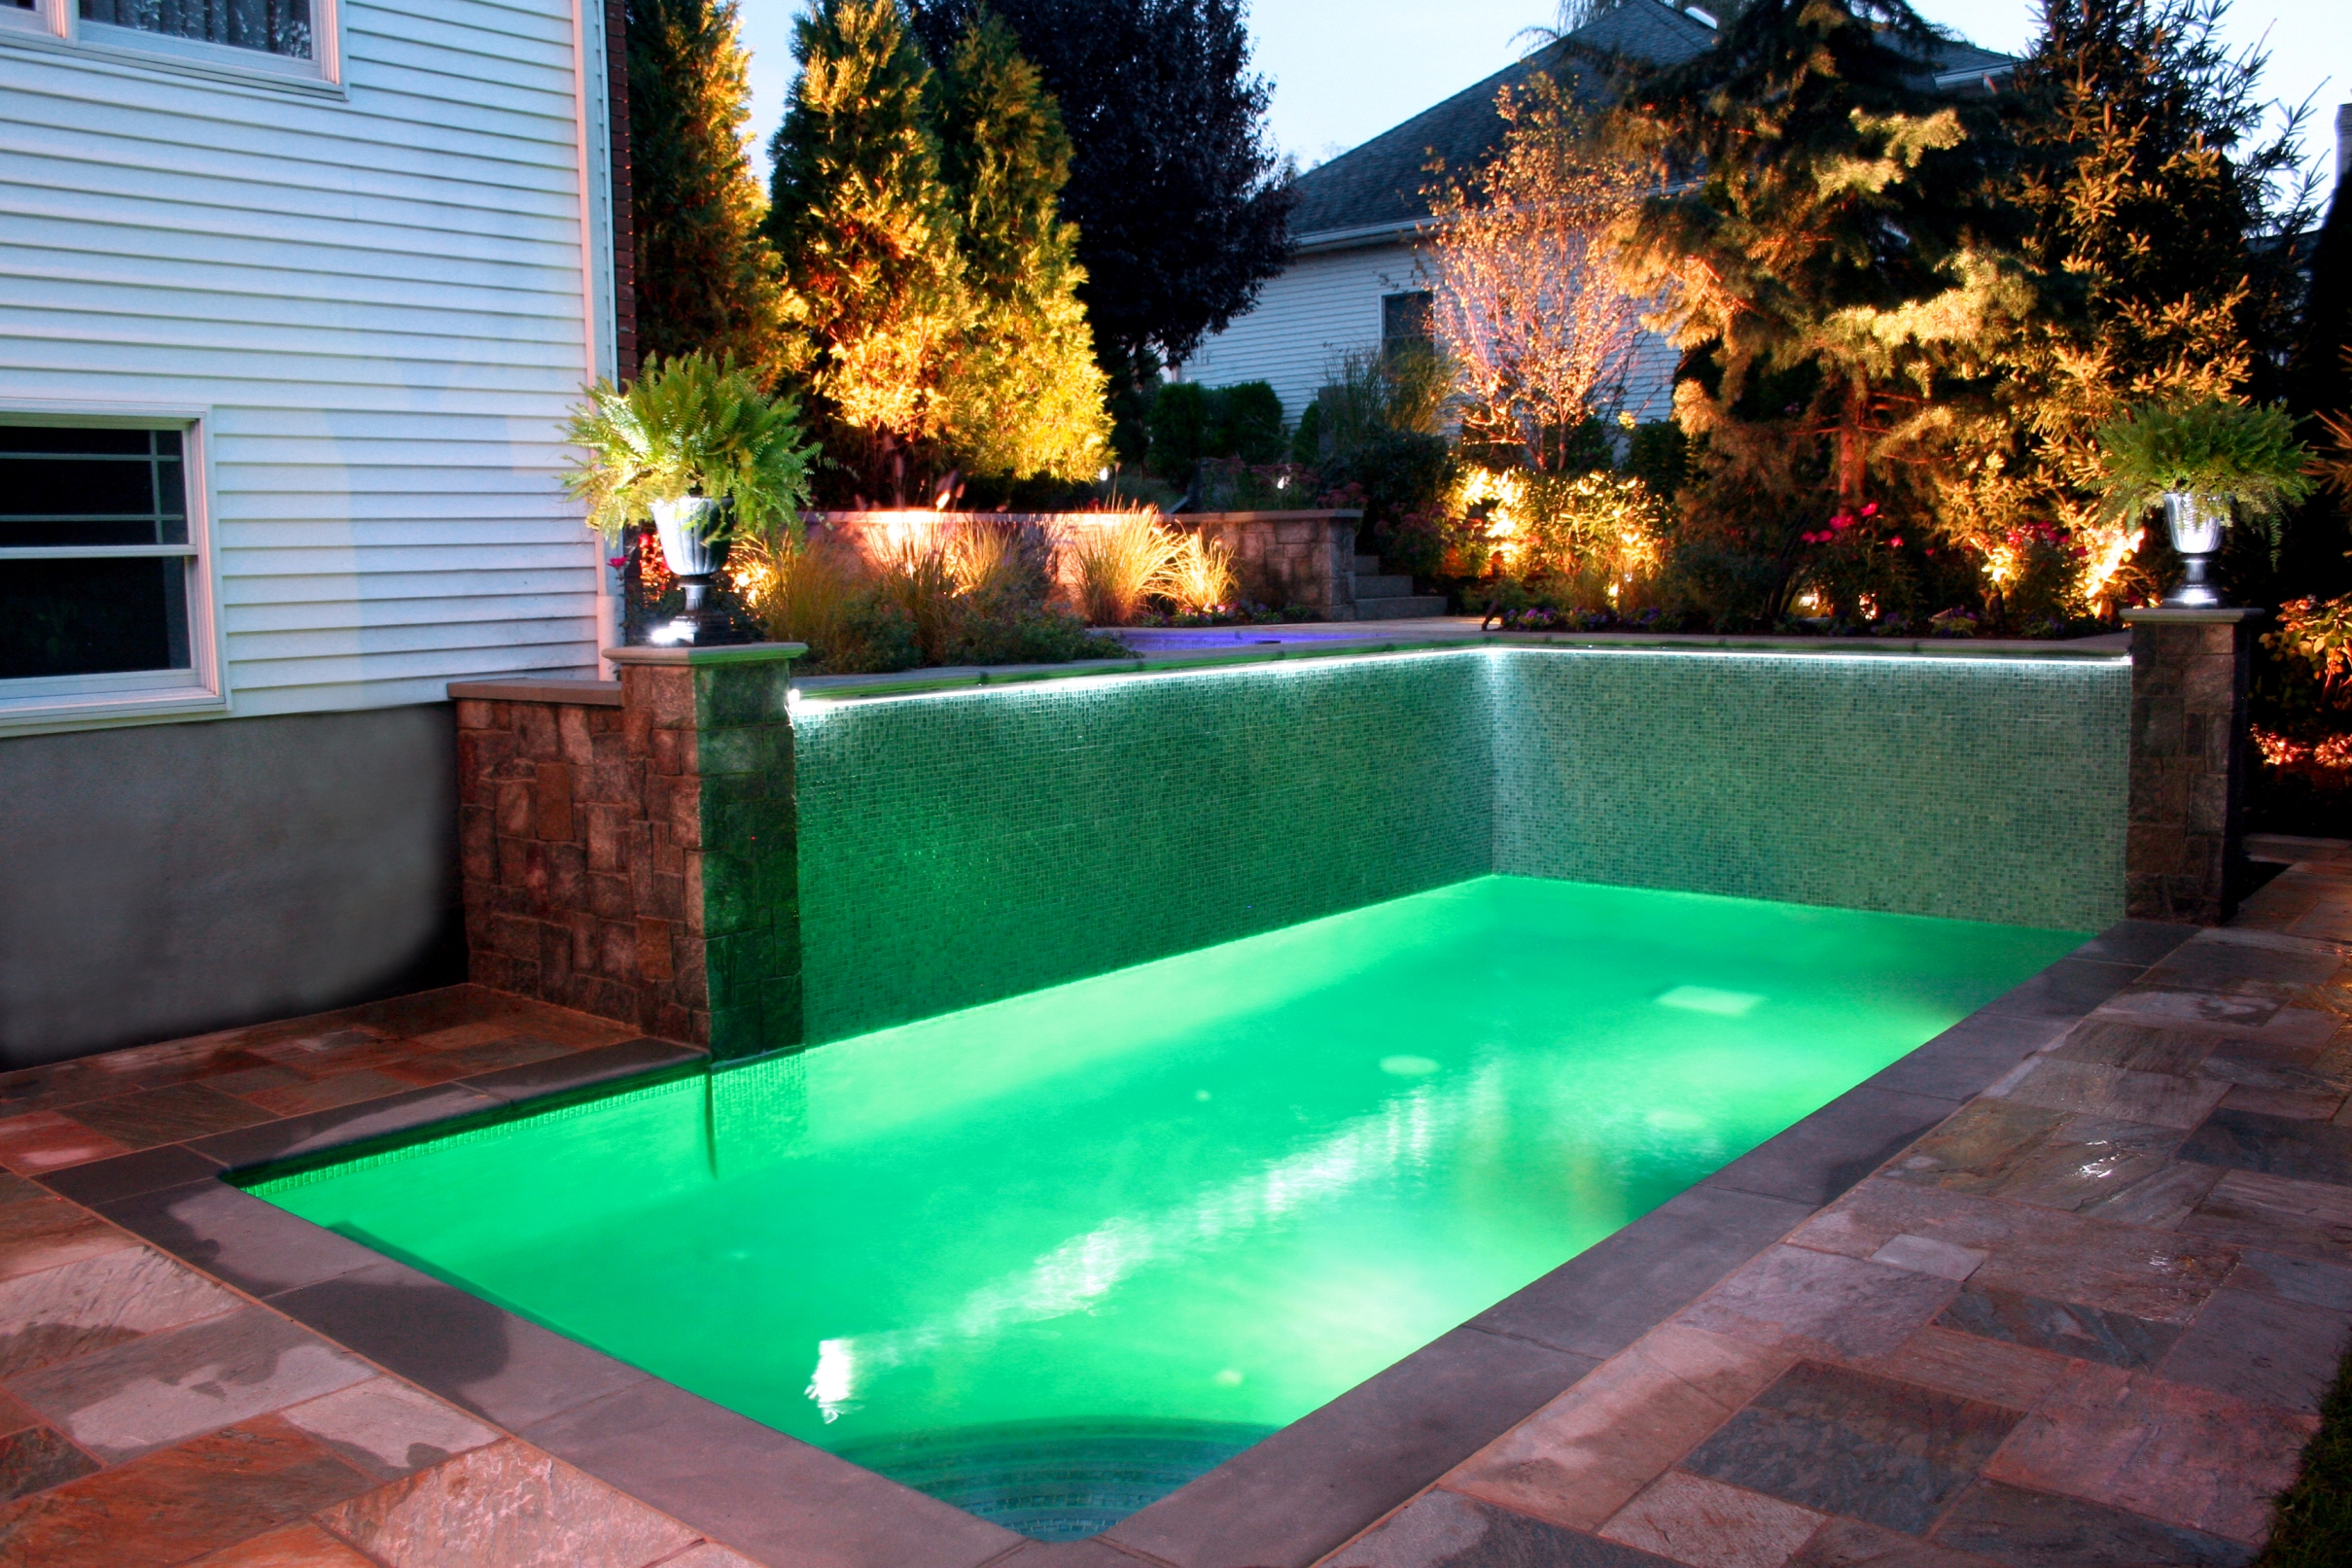 Small Backyard Landscaping Ideas With In Ground Pool And Nice Lighting Ideas